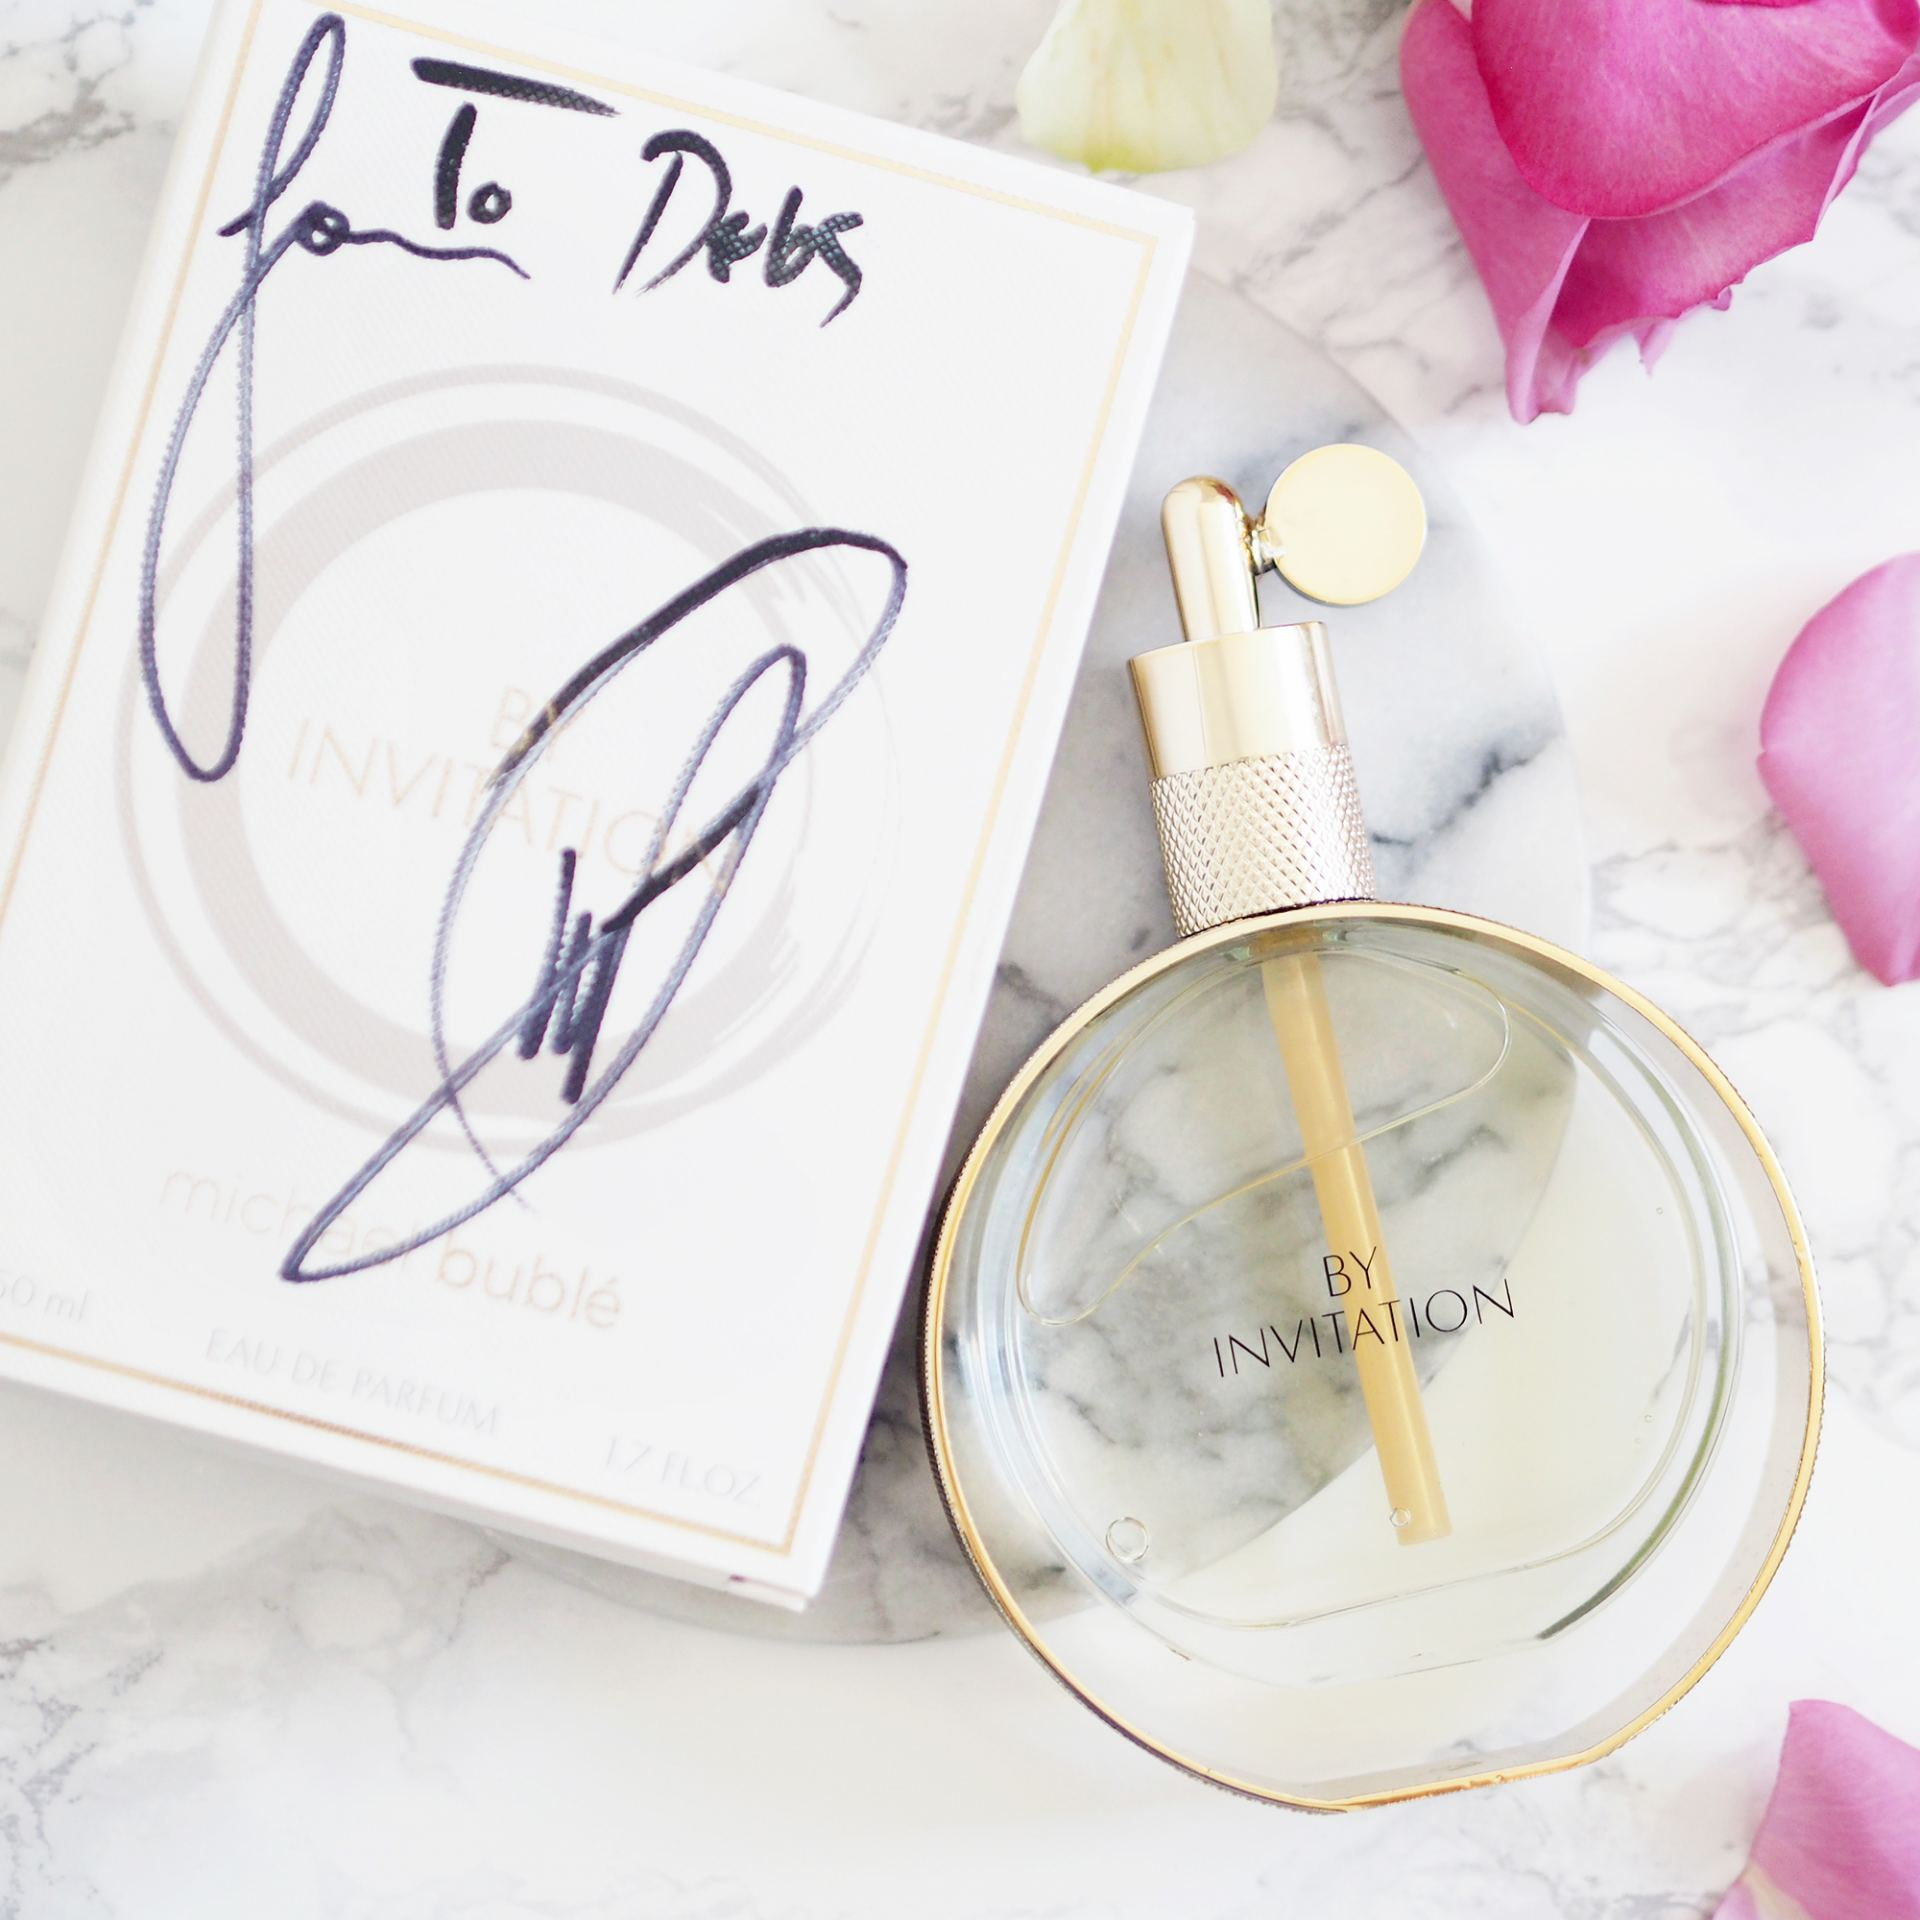 win signed michael buble perfume bottle